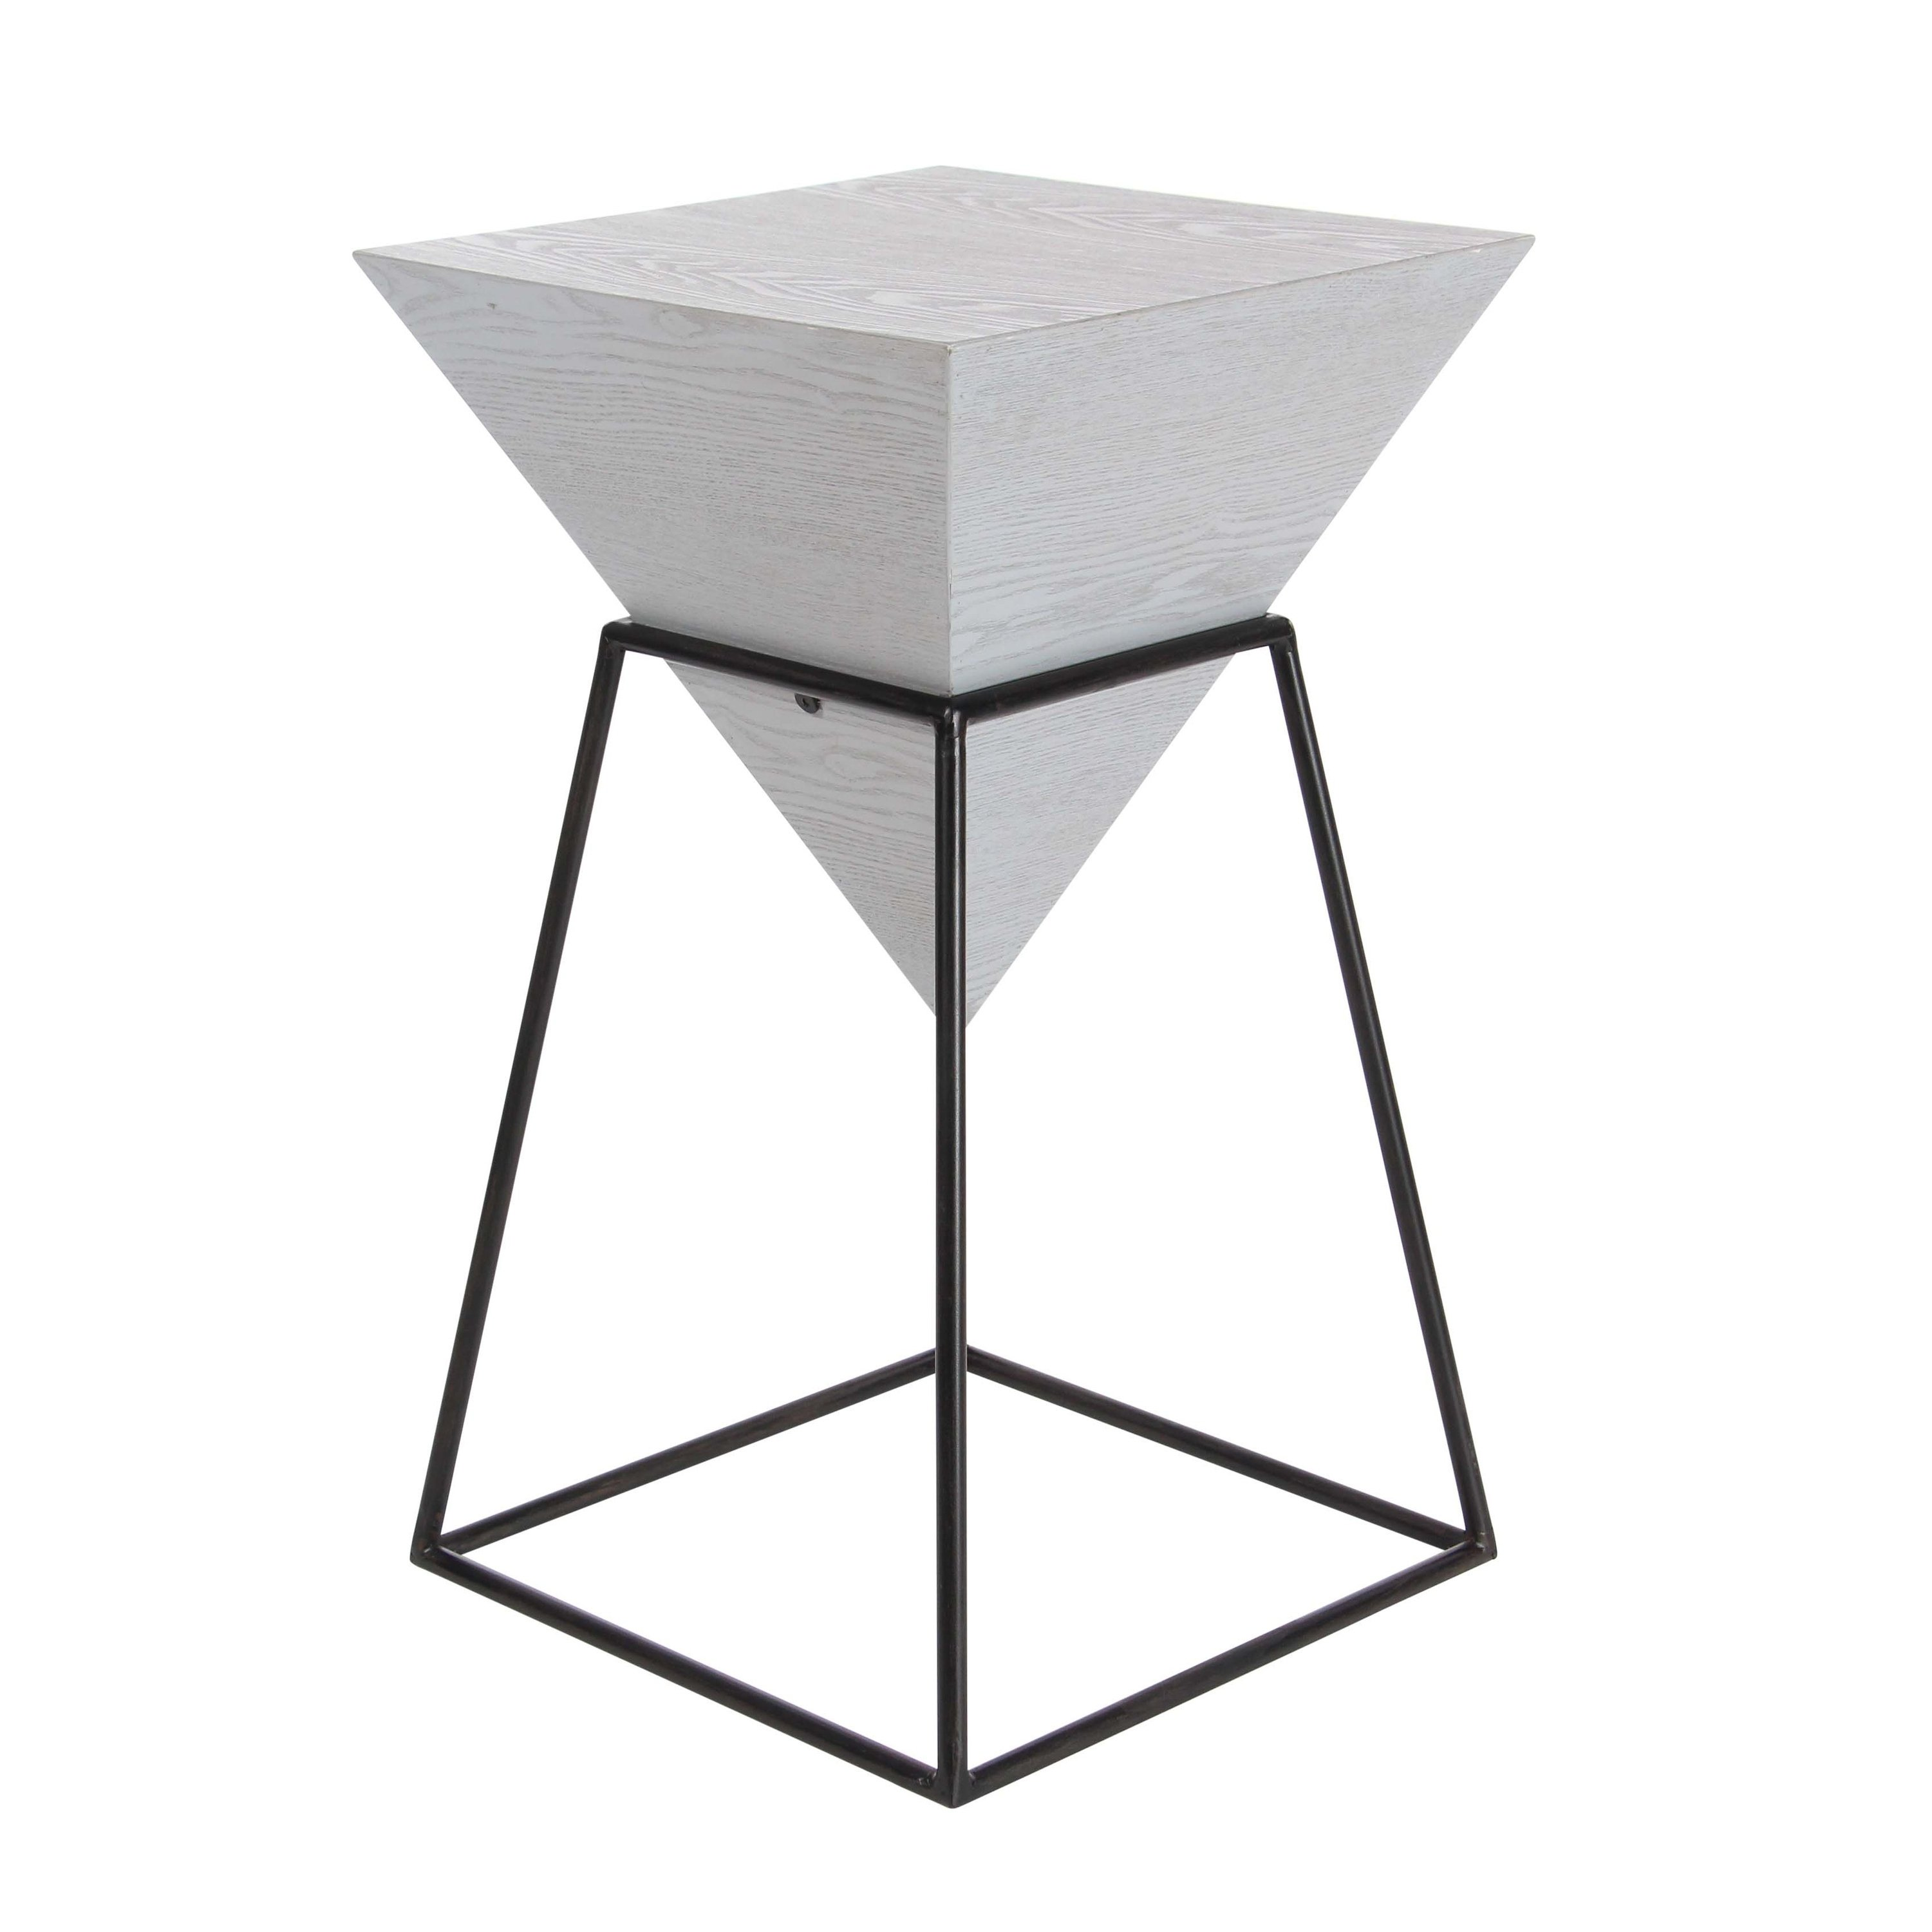 modern inch gray wood and iron accent table studio grey free shipping today style furniture nautical themed outdoor lighting small glass top patio nursery nightstand marble metal